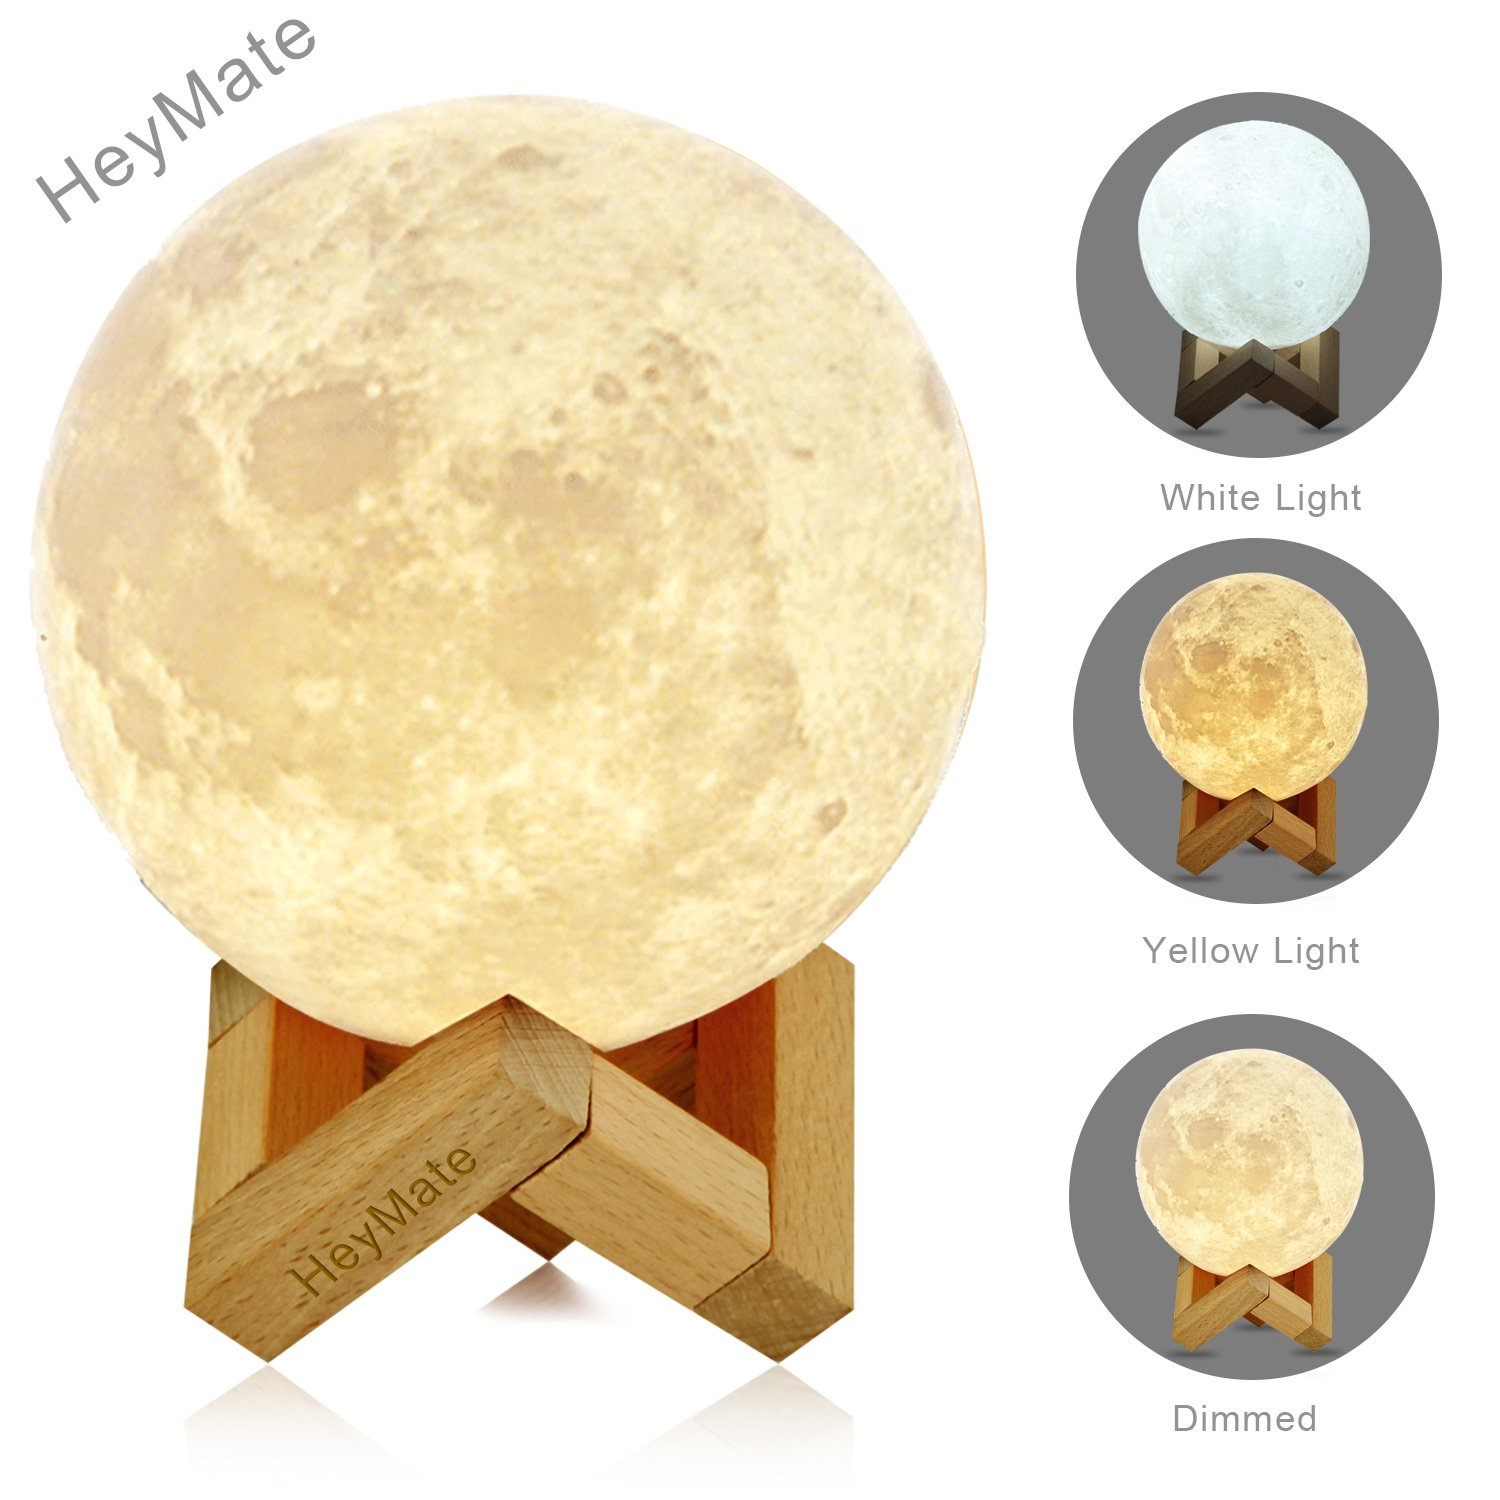 HeyMate 3D Printing Lunar Lamp Touch Control Night Light as Kids Women Girls Gift,Large ! 5.9'' Rechargeable Moon Lamp with Wooden Holder, Warm Cool White Dimmable Touch Control